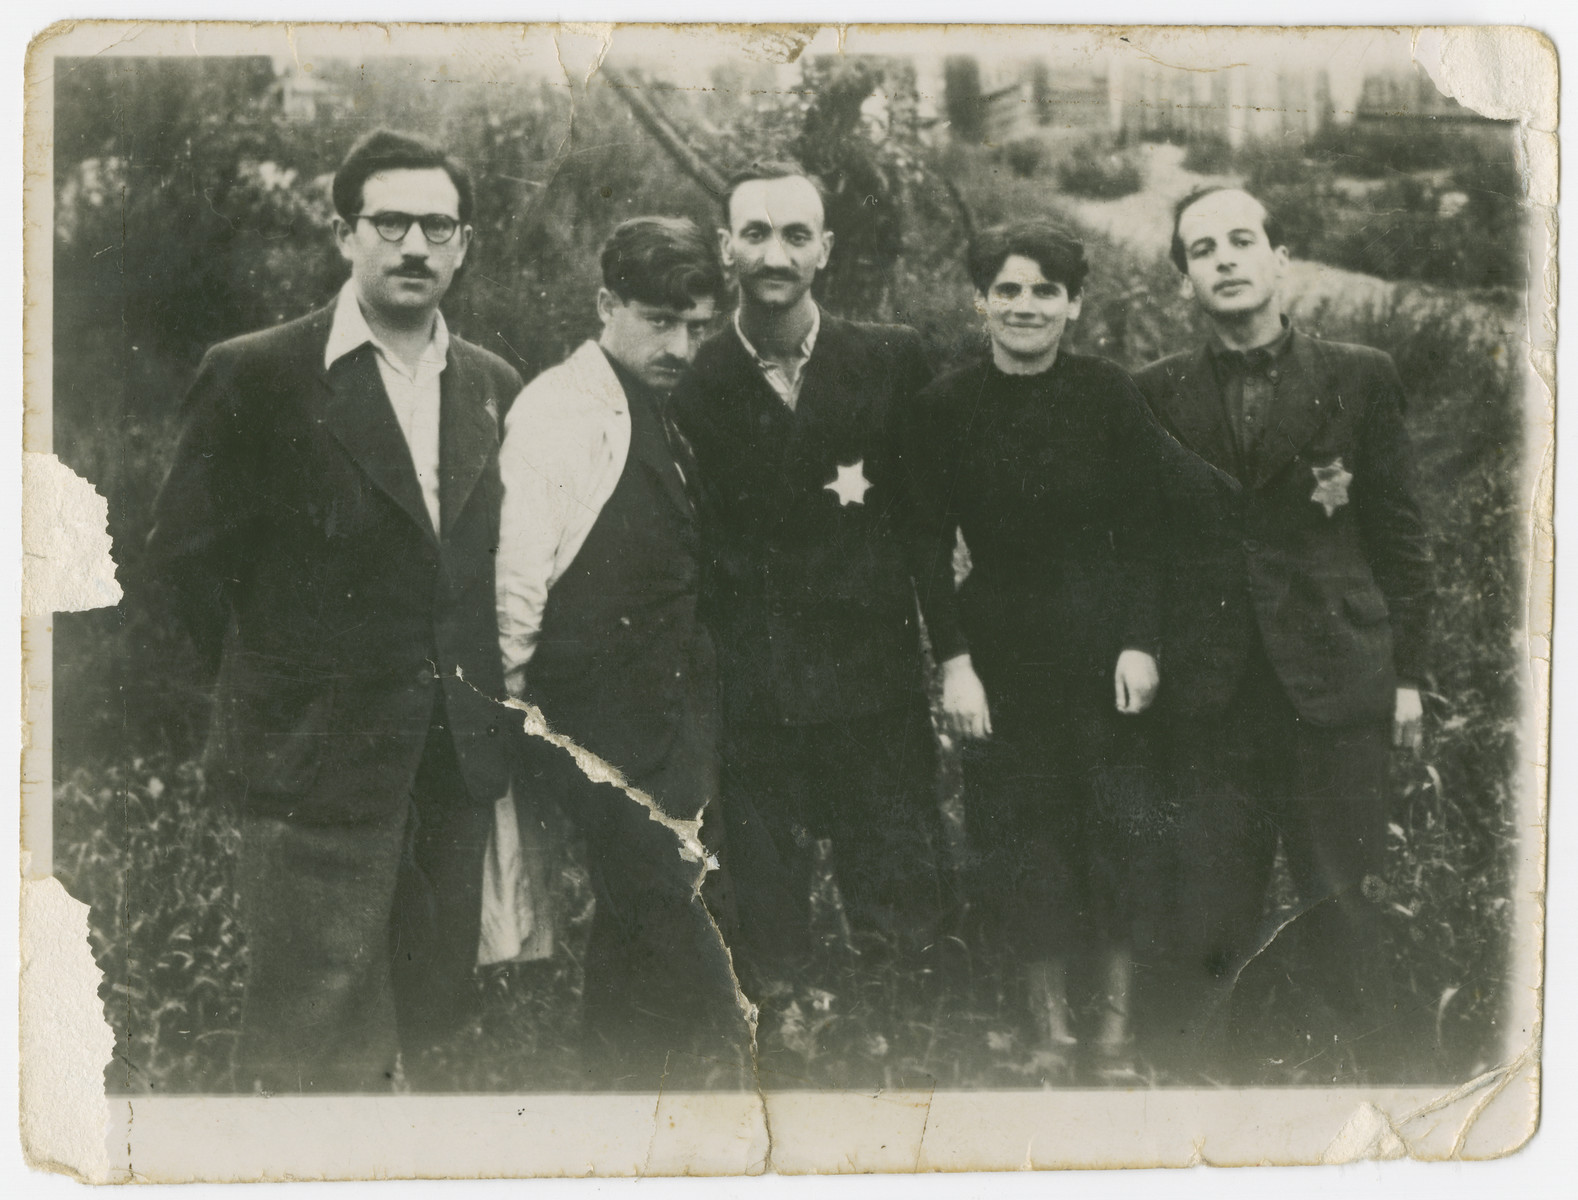 Group portrait of the leaders of the Anti-Fascist partisan group in the Kovno ghetto.  From left to right are Pesach Shachter, Moshe Sherman, Chaim Yellin, Masha Lan and Dima Gelperin.